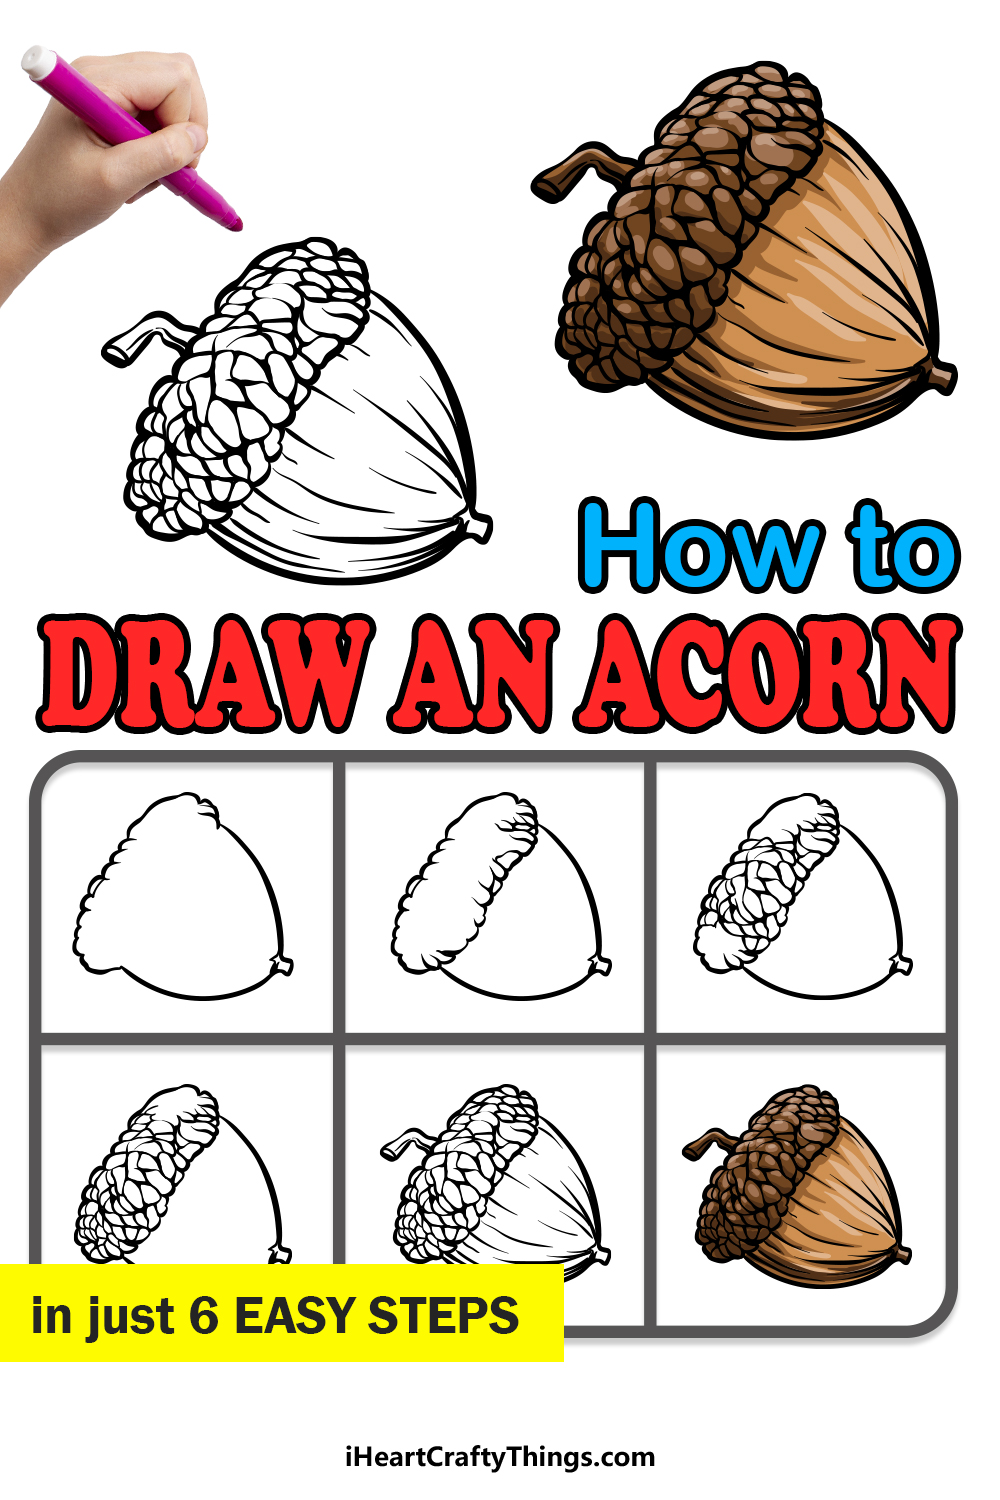 how to draw an acorn in 6 easy steps